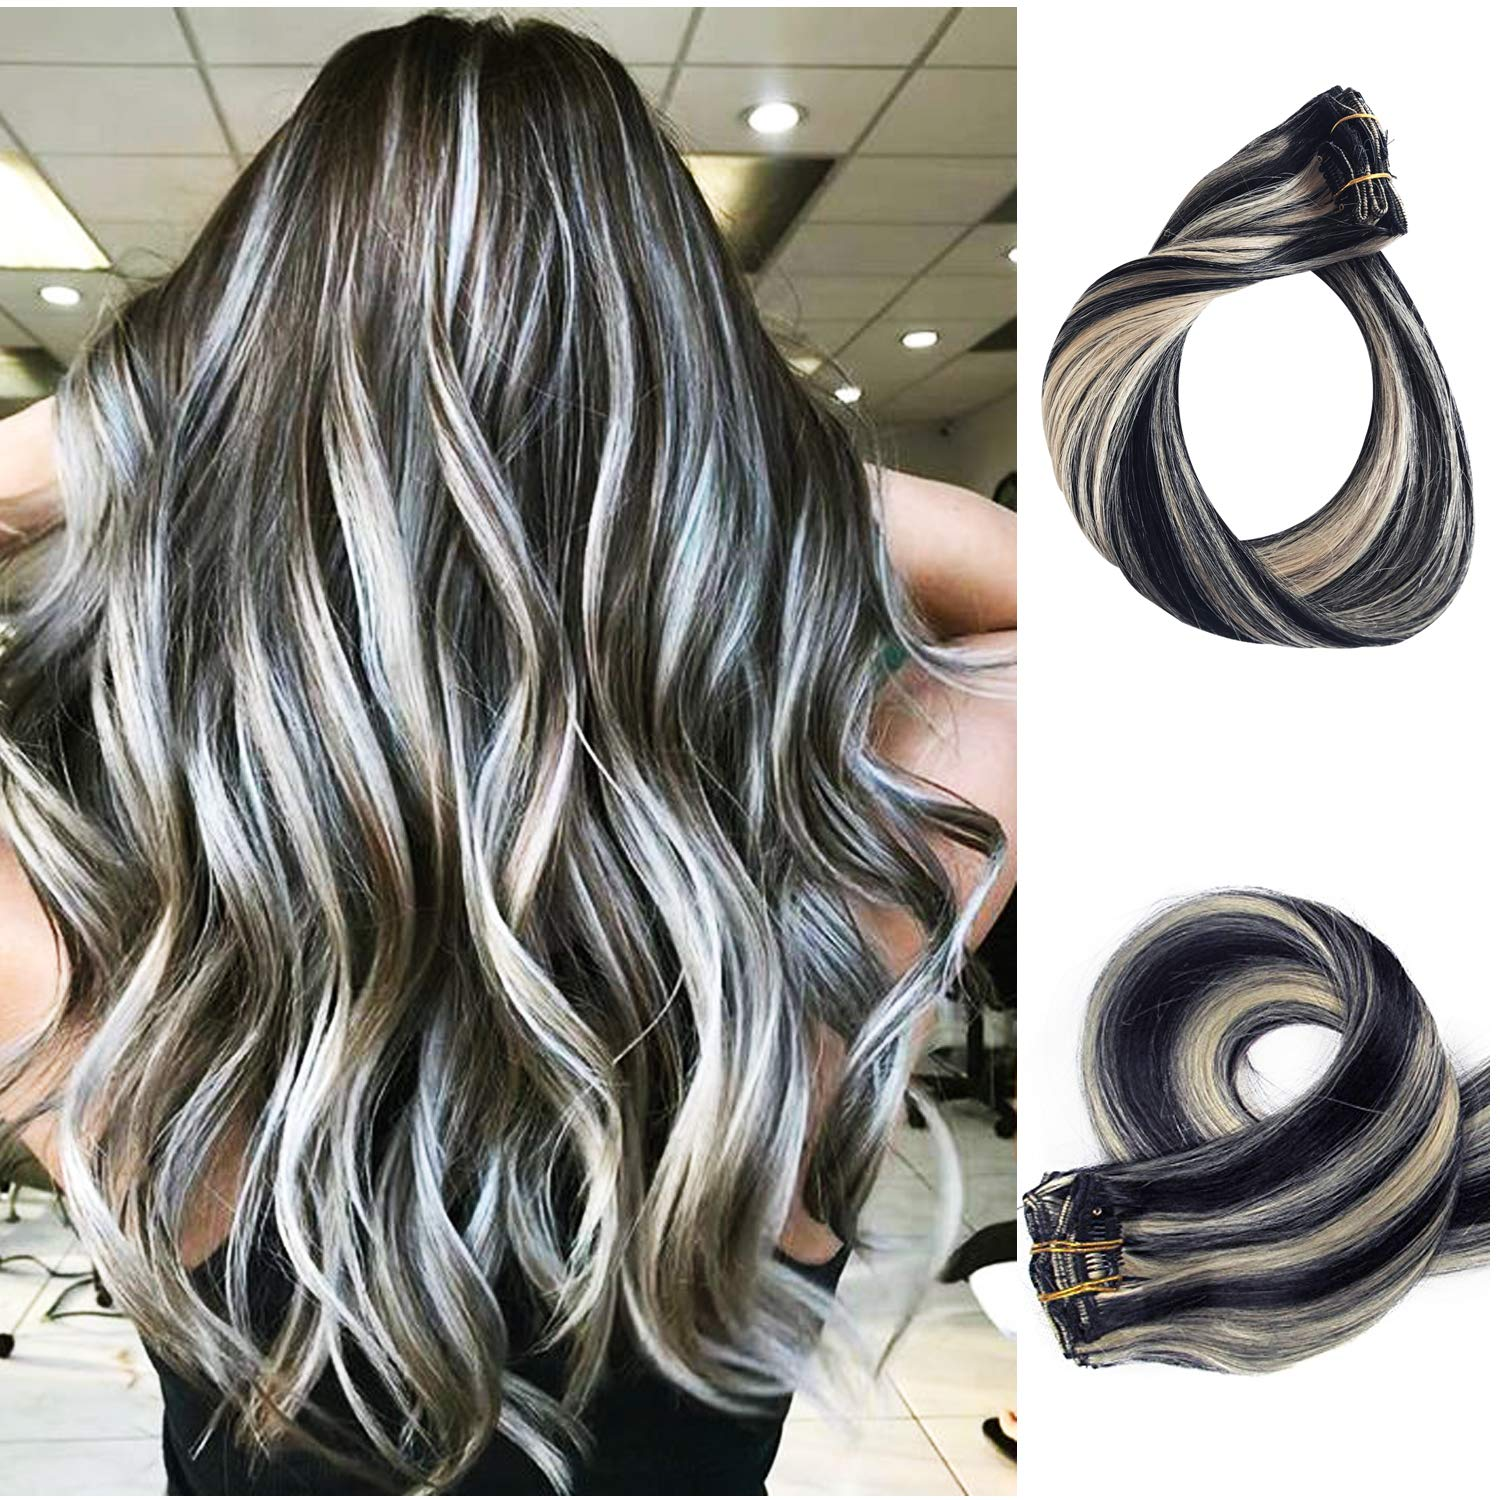 Clip in Human Hair Extensions Balayage 12 Blonde Highlights Real Remy Hair  Extensions Clip on for Women Black with Bleach Blonde Highlights Double ...